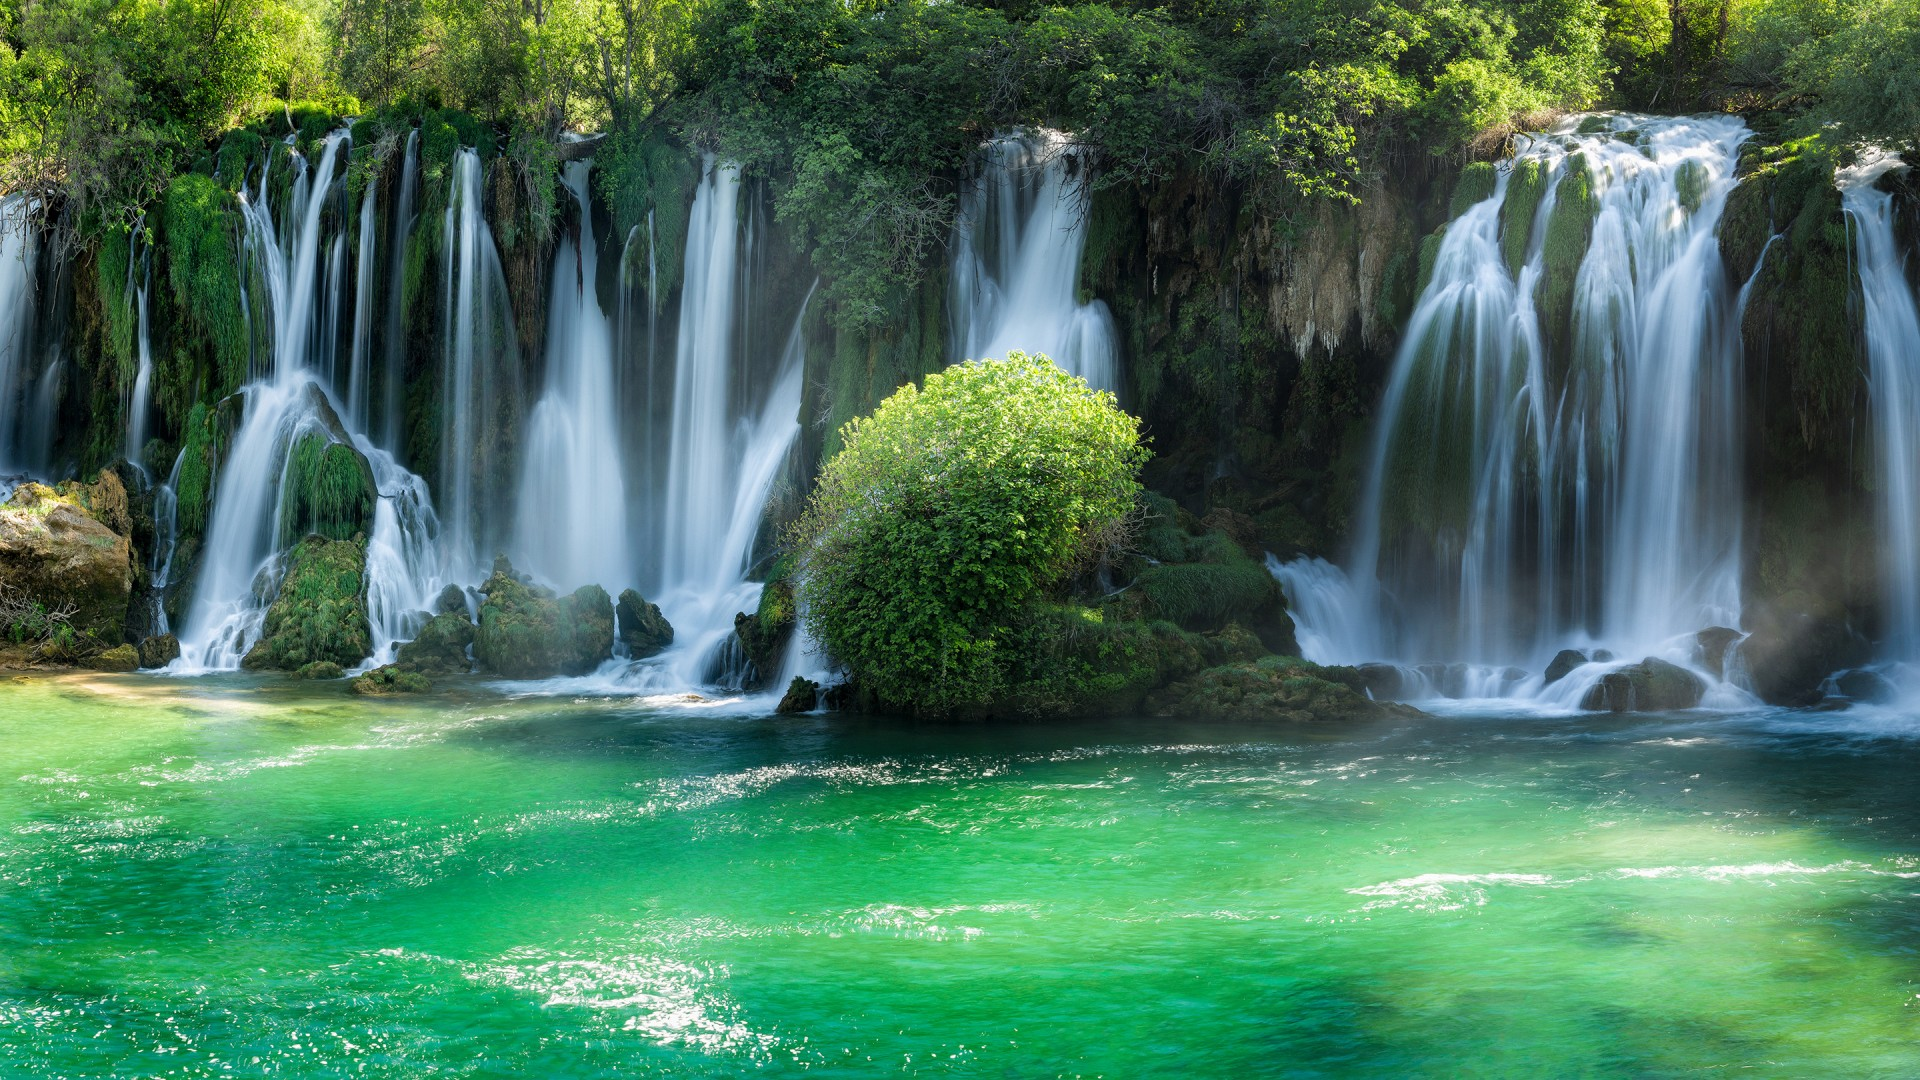 3d Wallpaper Widescreen Waterfalls Kravice Waterfalls Wallpapers Hd Wallpapers Id 25616